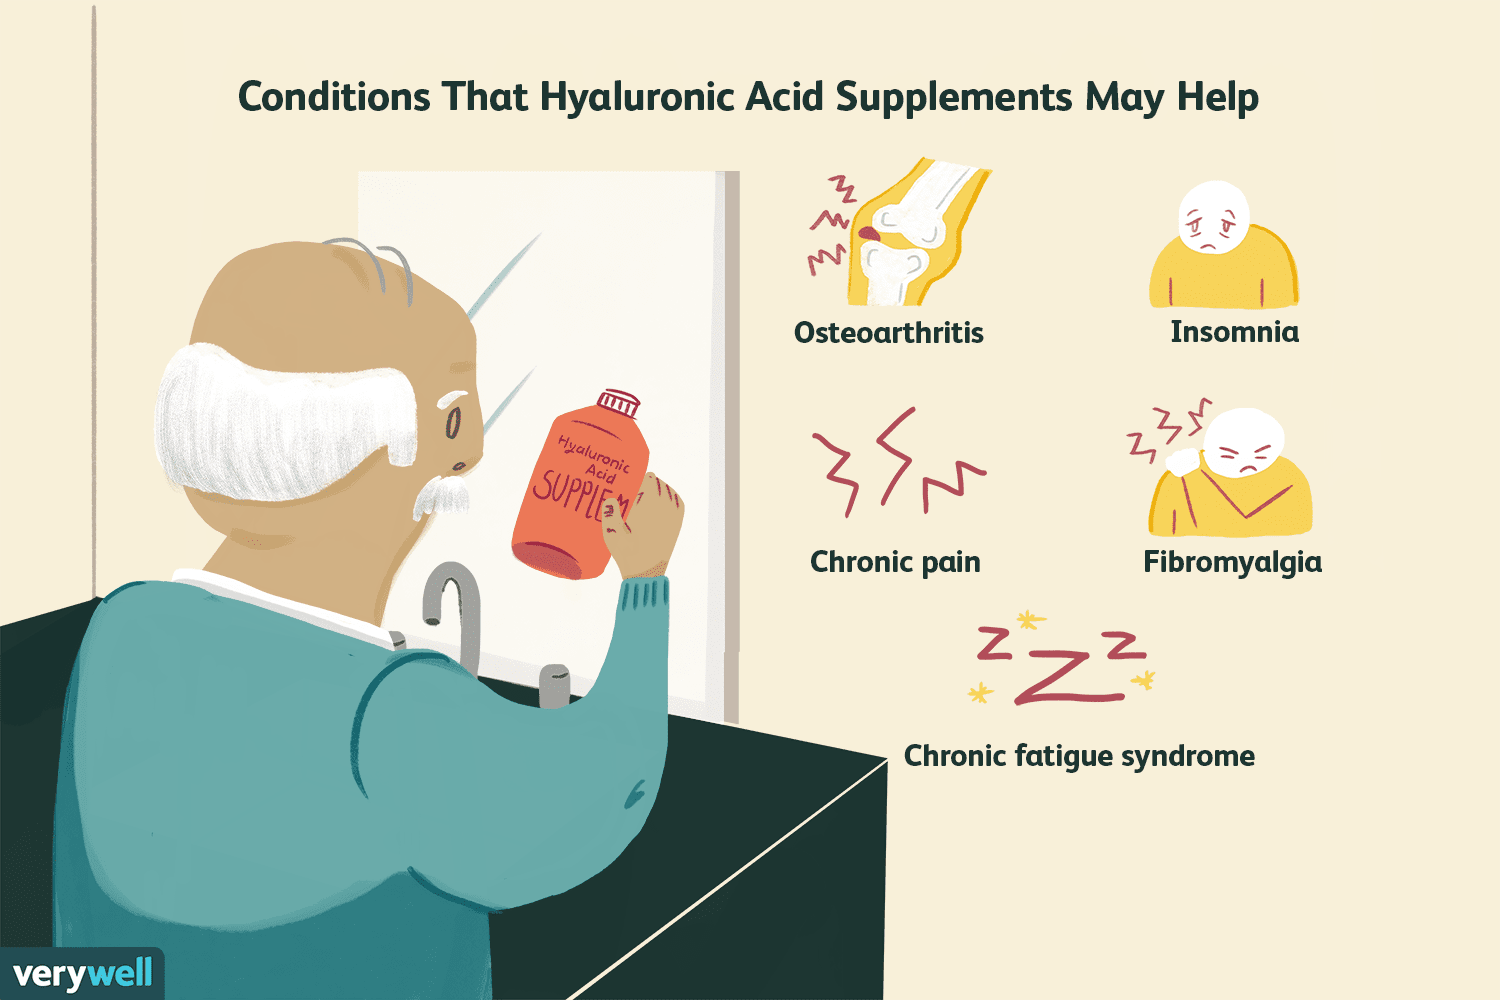 hight resolution of why do people use hyaluronic acid supplements